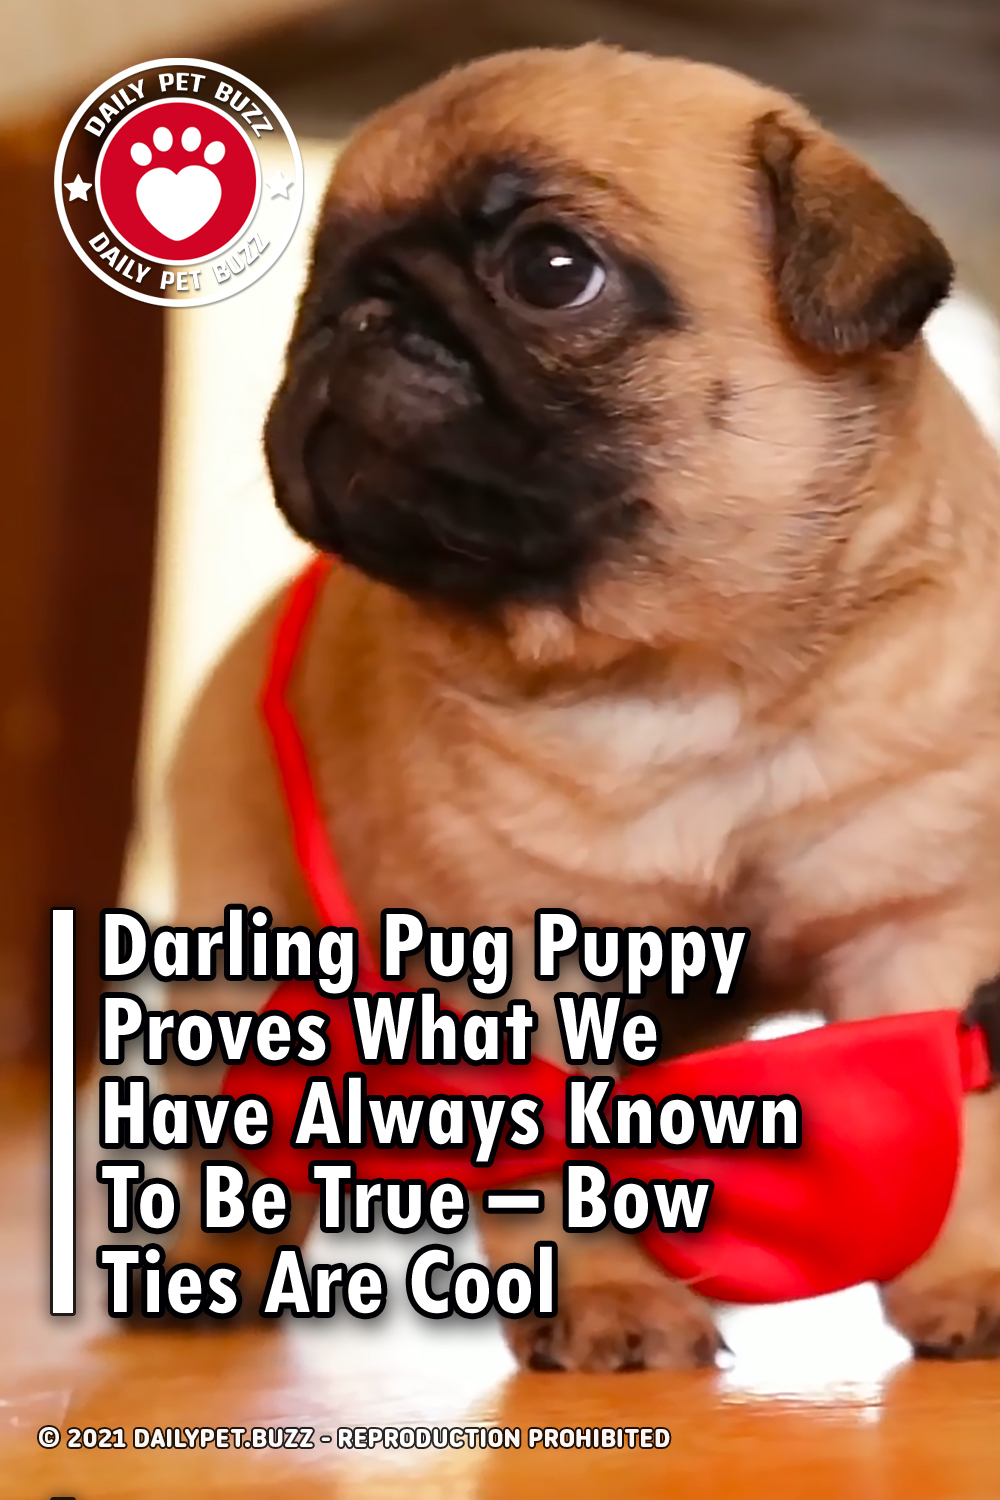 Darling Pug Puppy Proves What We Have Always Known To Be True – Bow Ties Are Cool